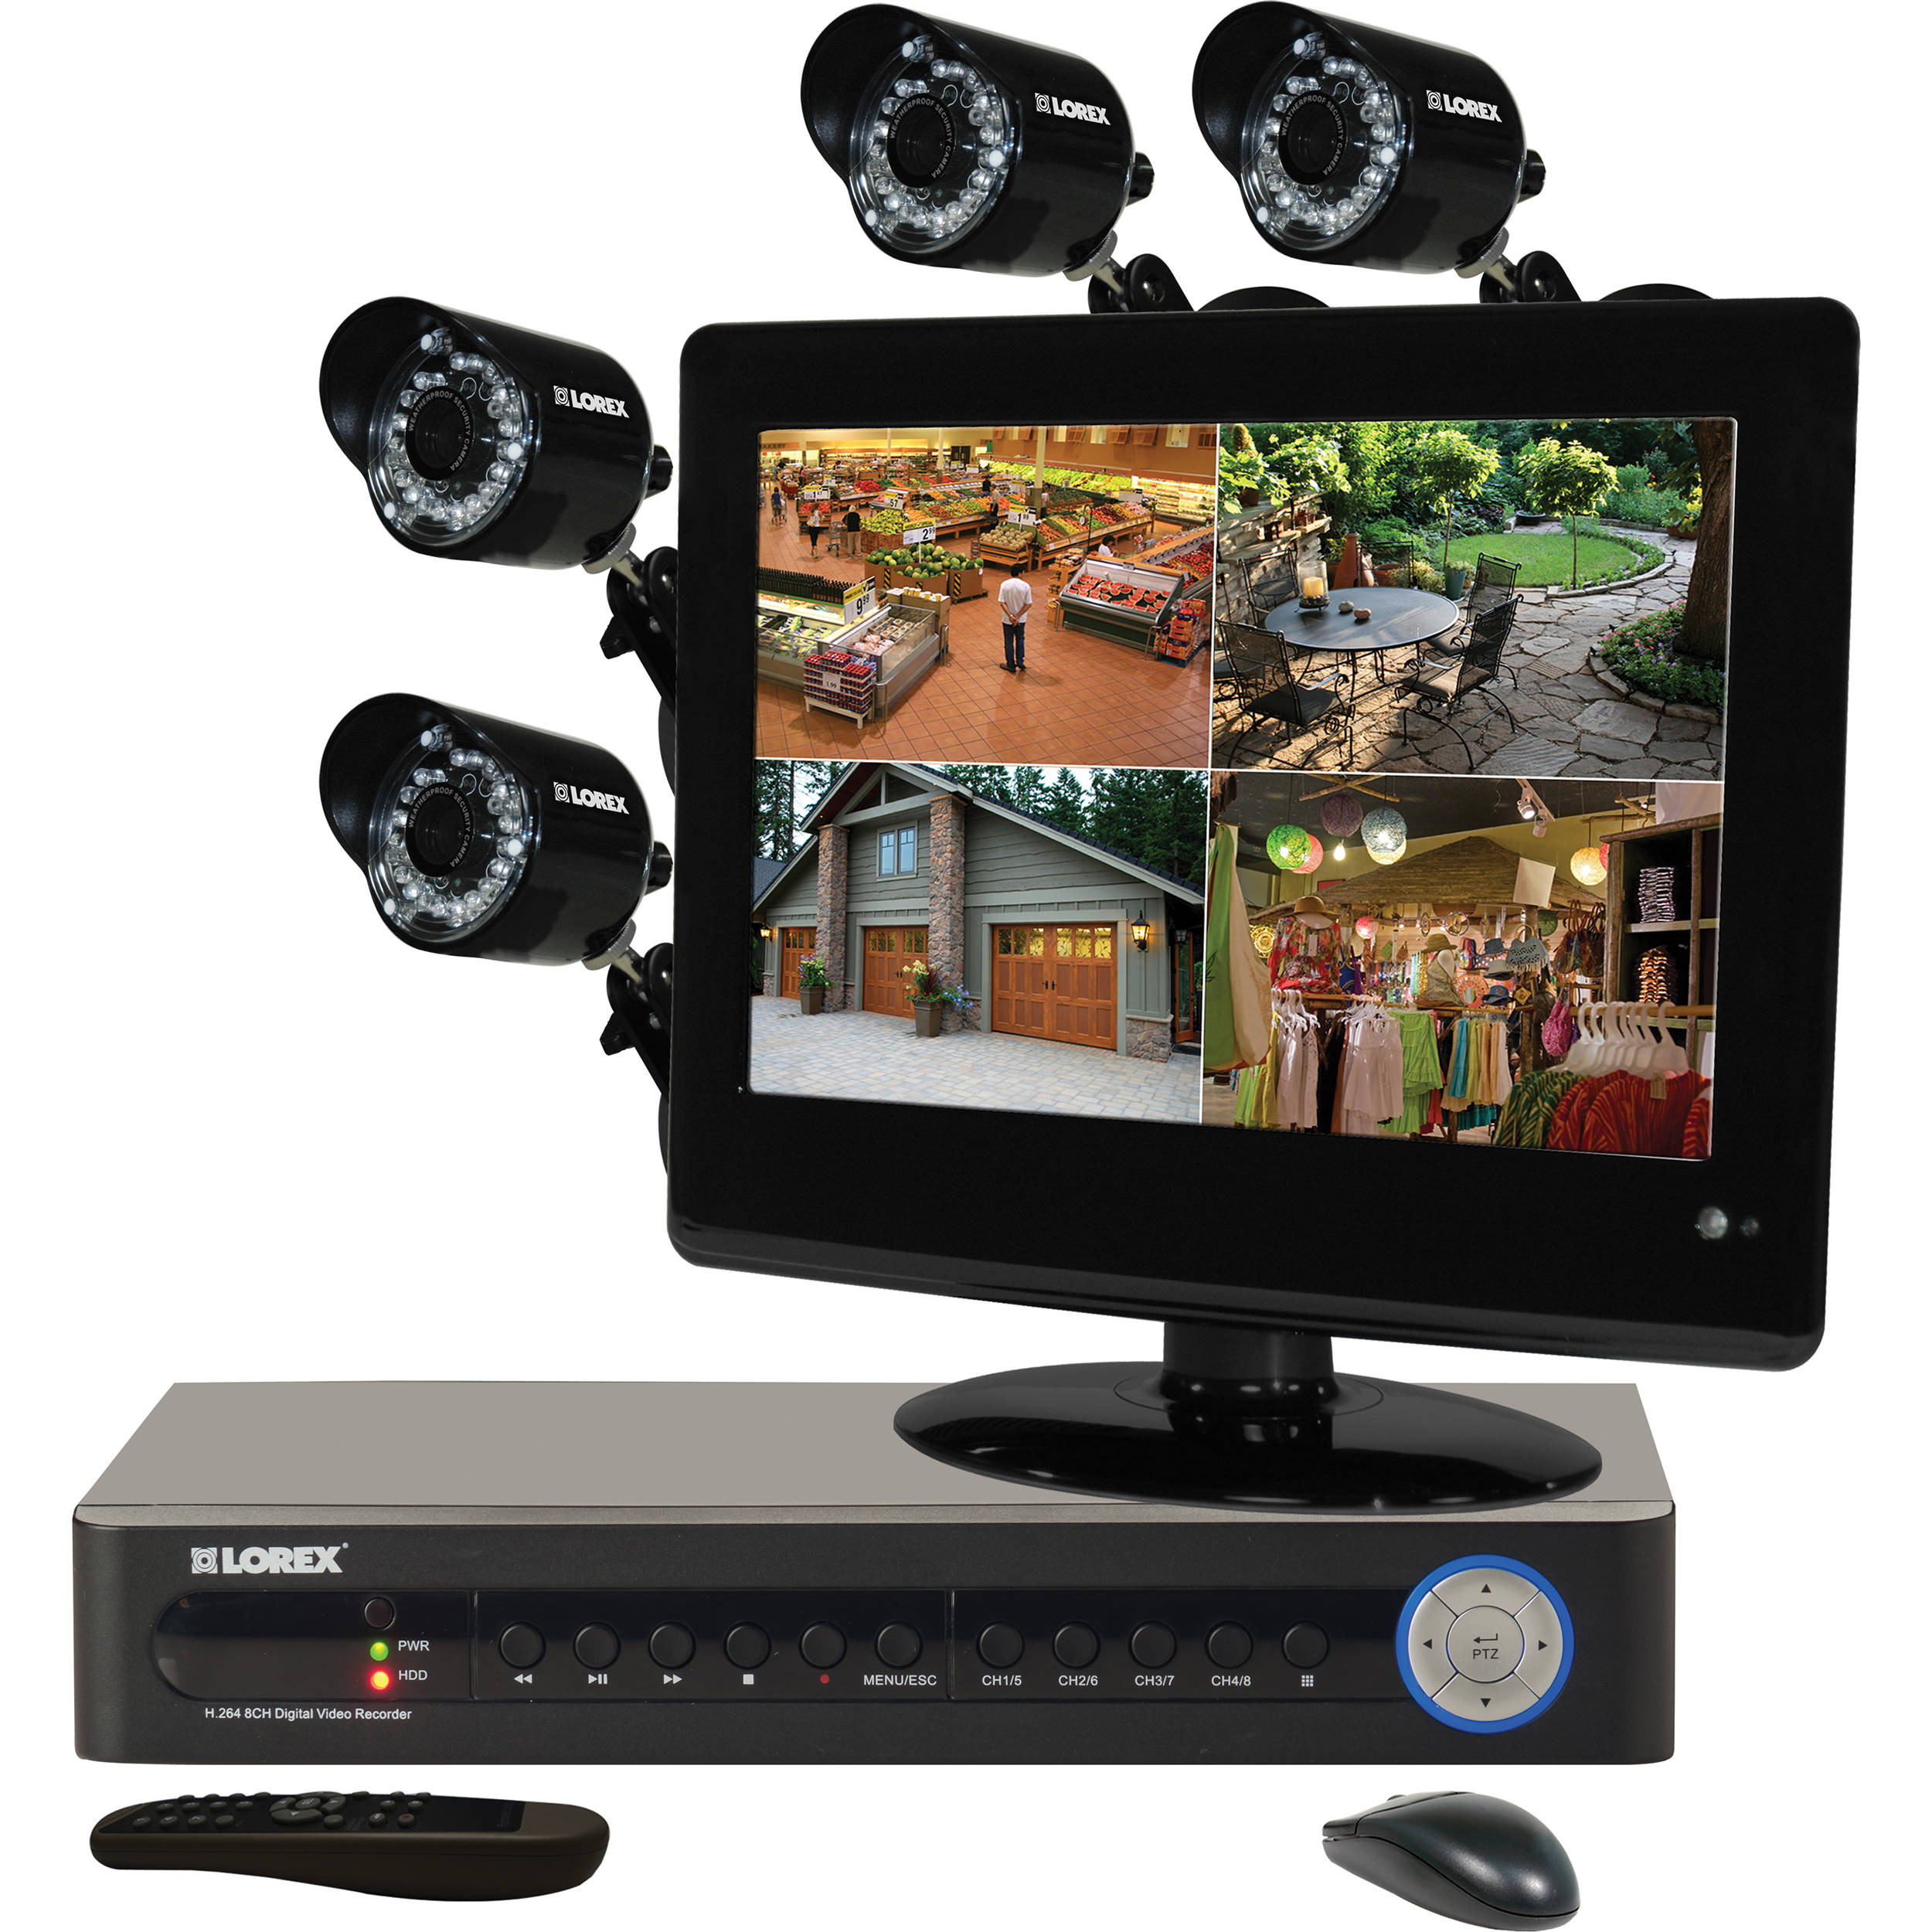 Find security systems for home and office with Sam's Club. Get high quality security for less with the wide selection of systems available at forexnetwork.tk